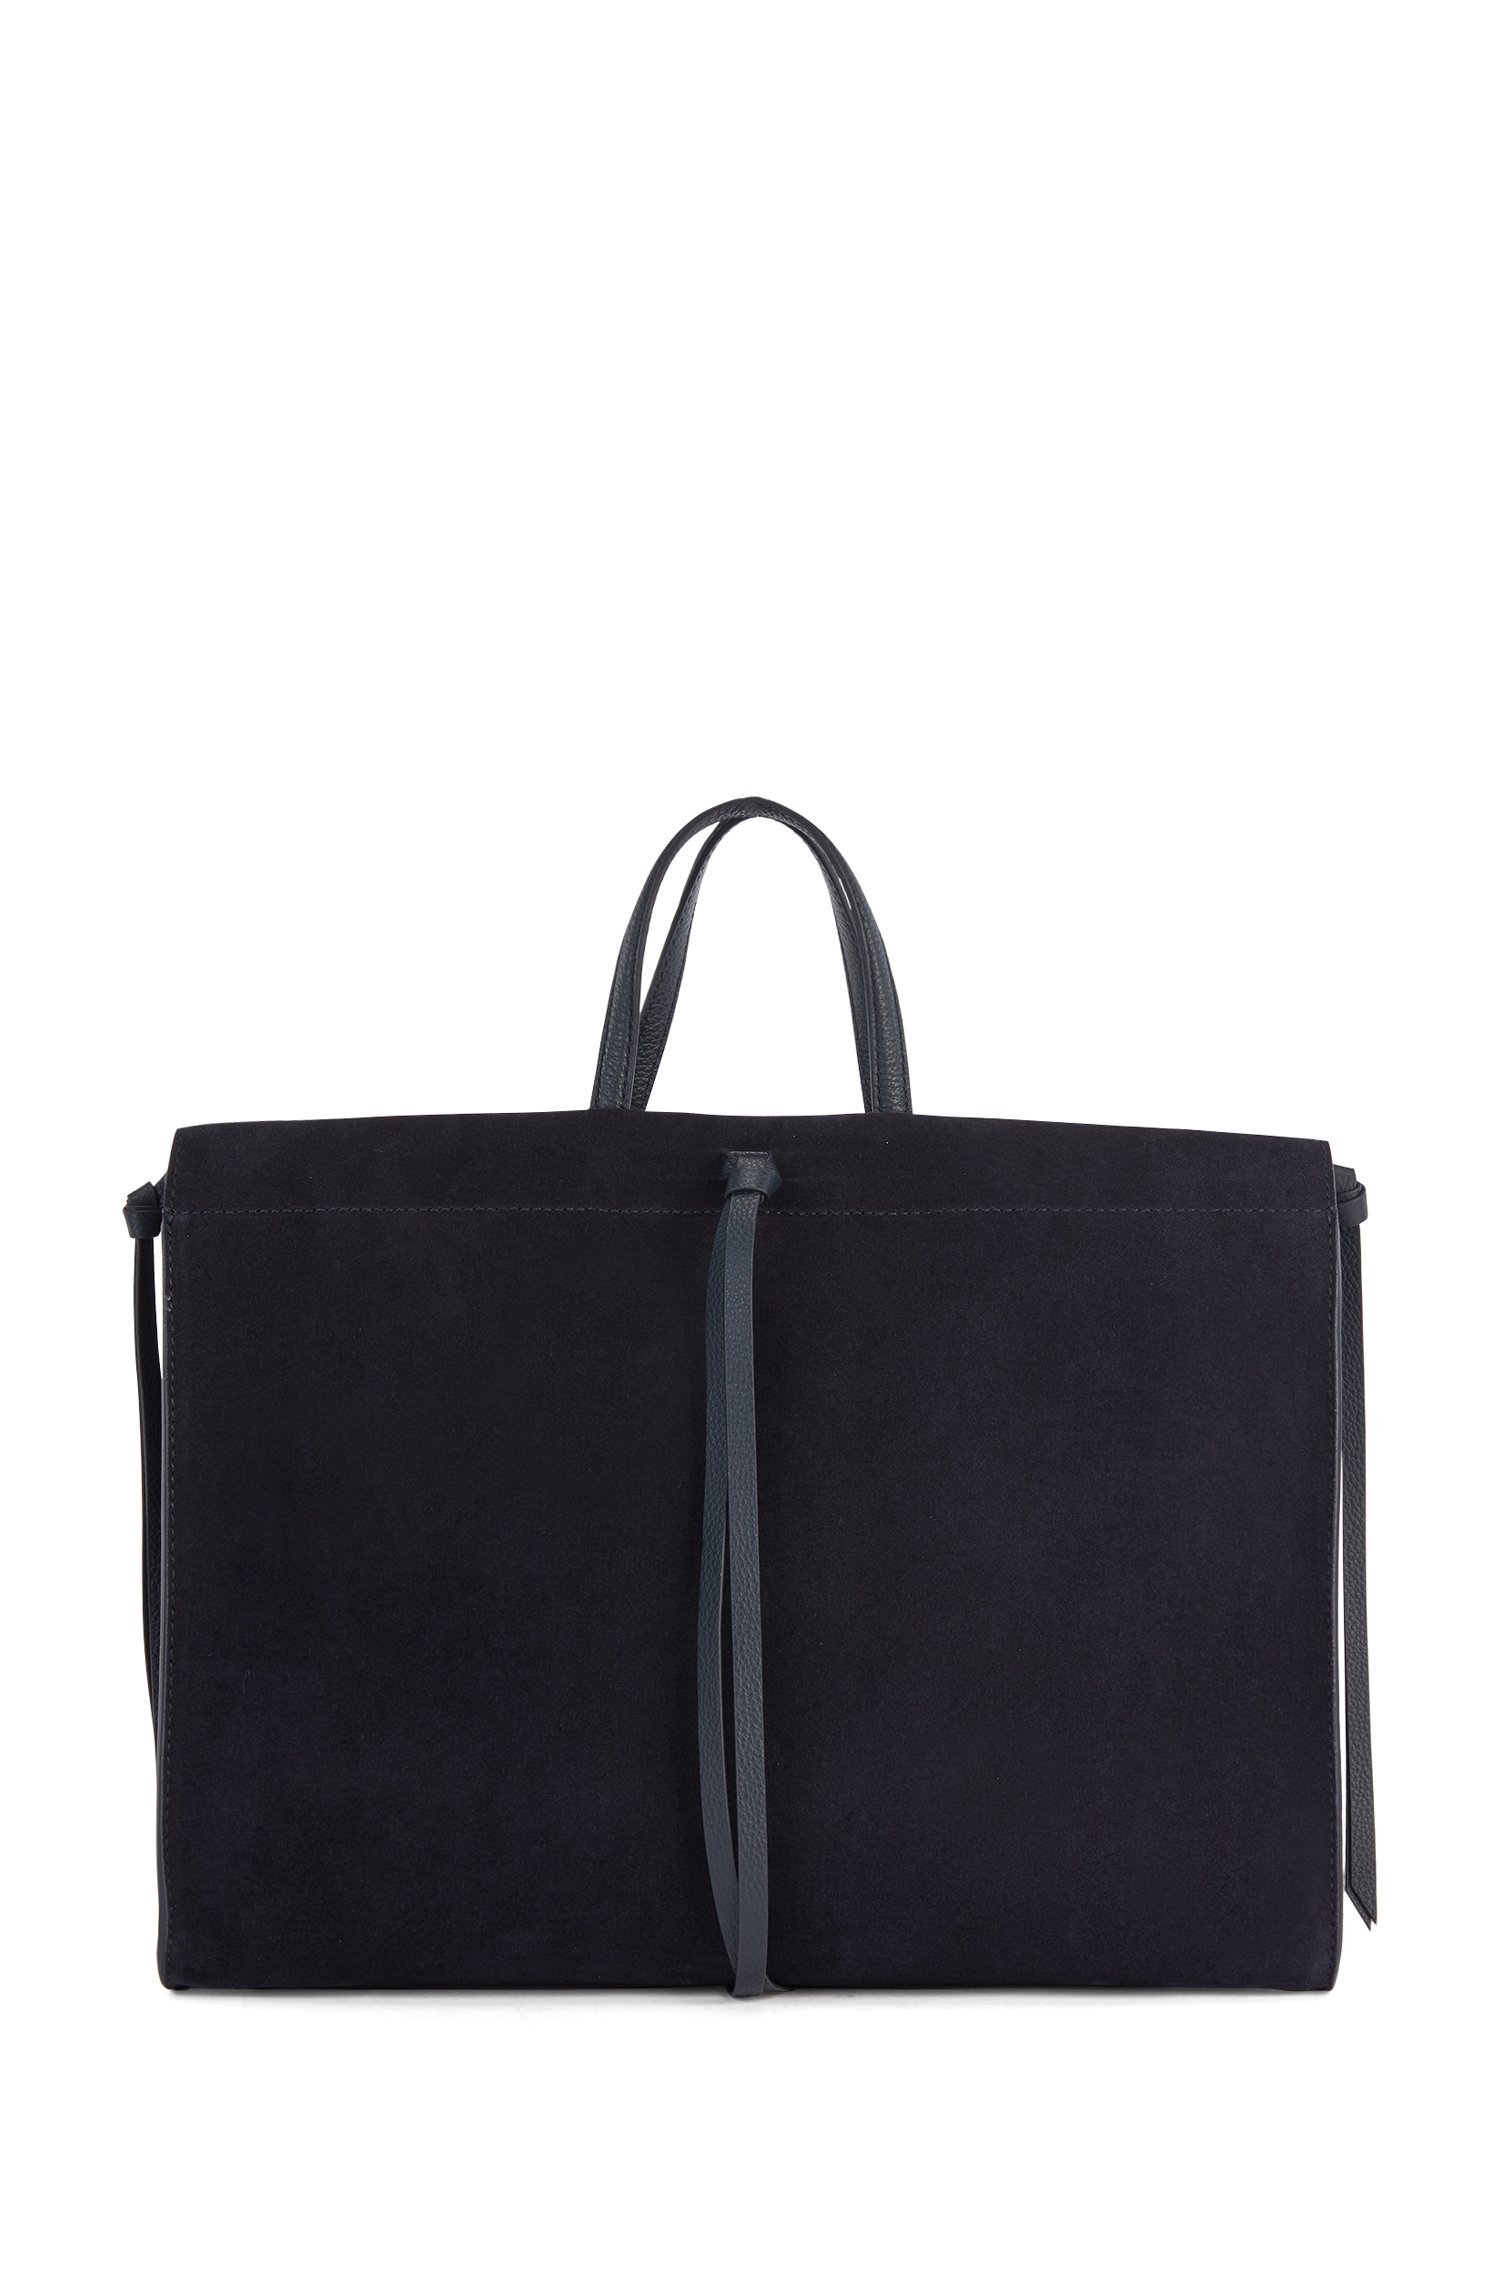 Suede tote bag with knotted tassel trims, Black